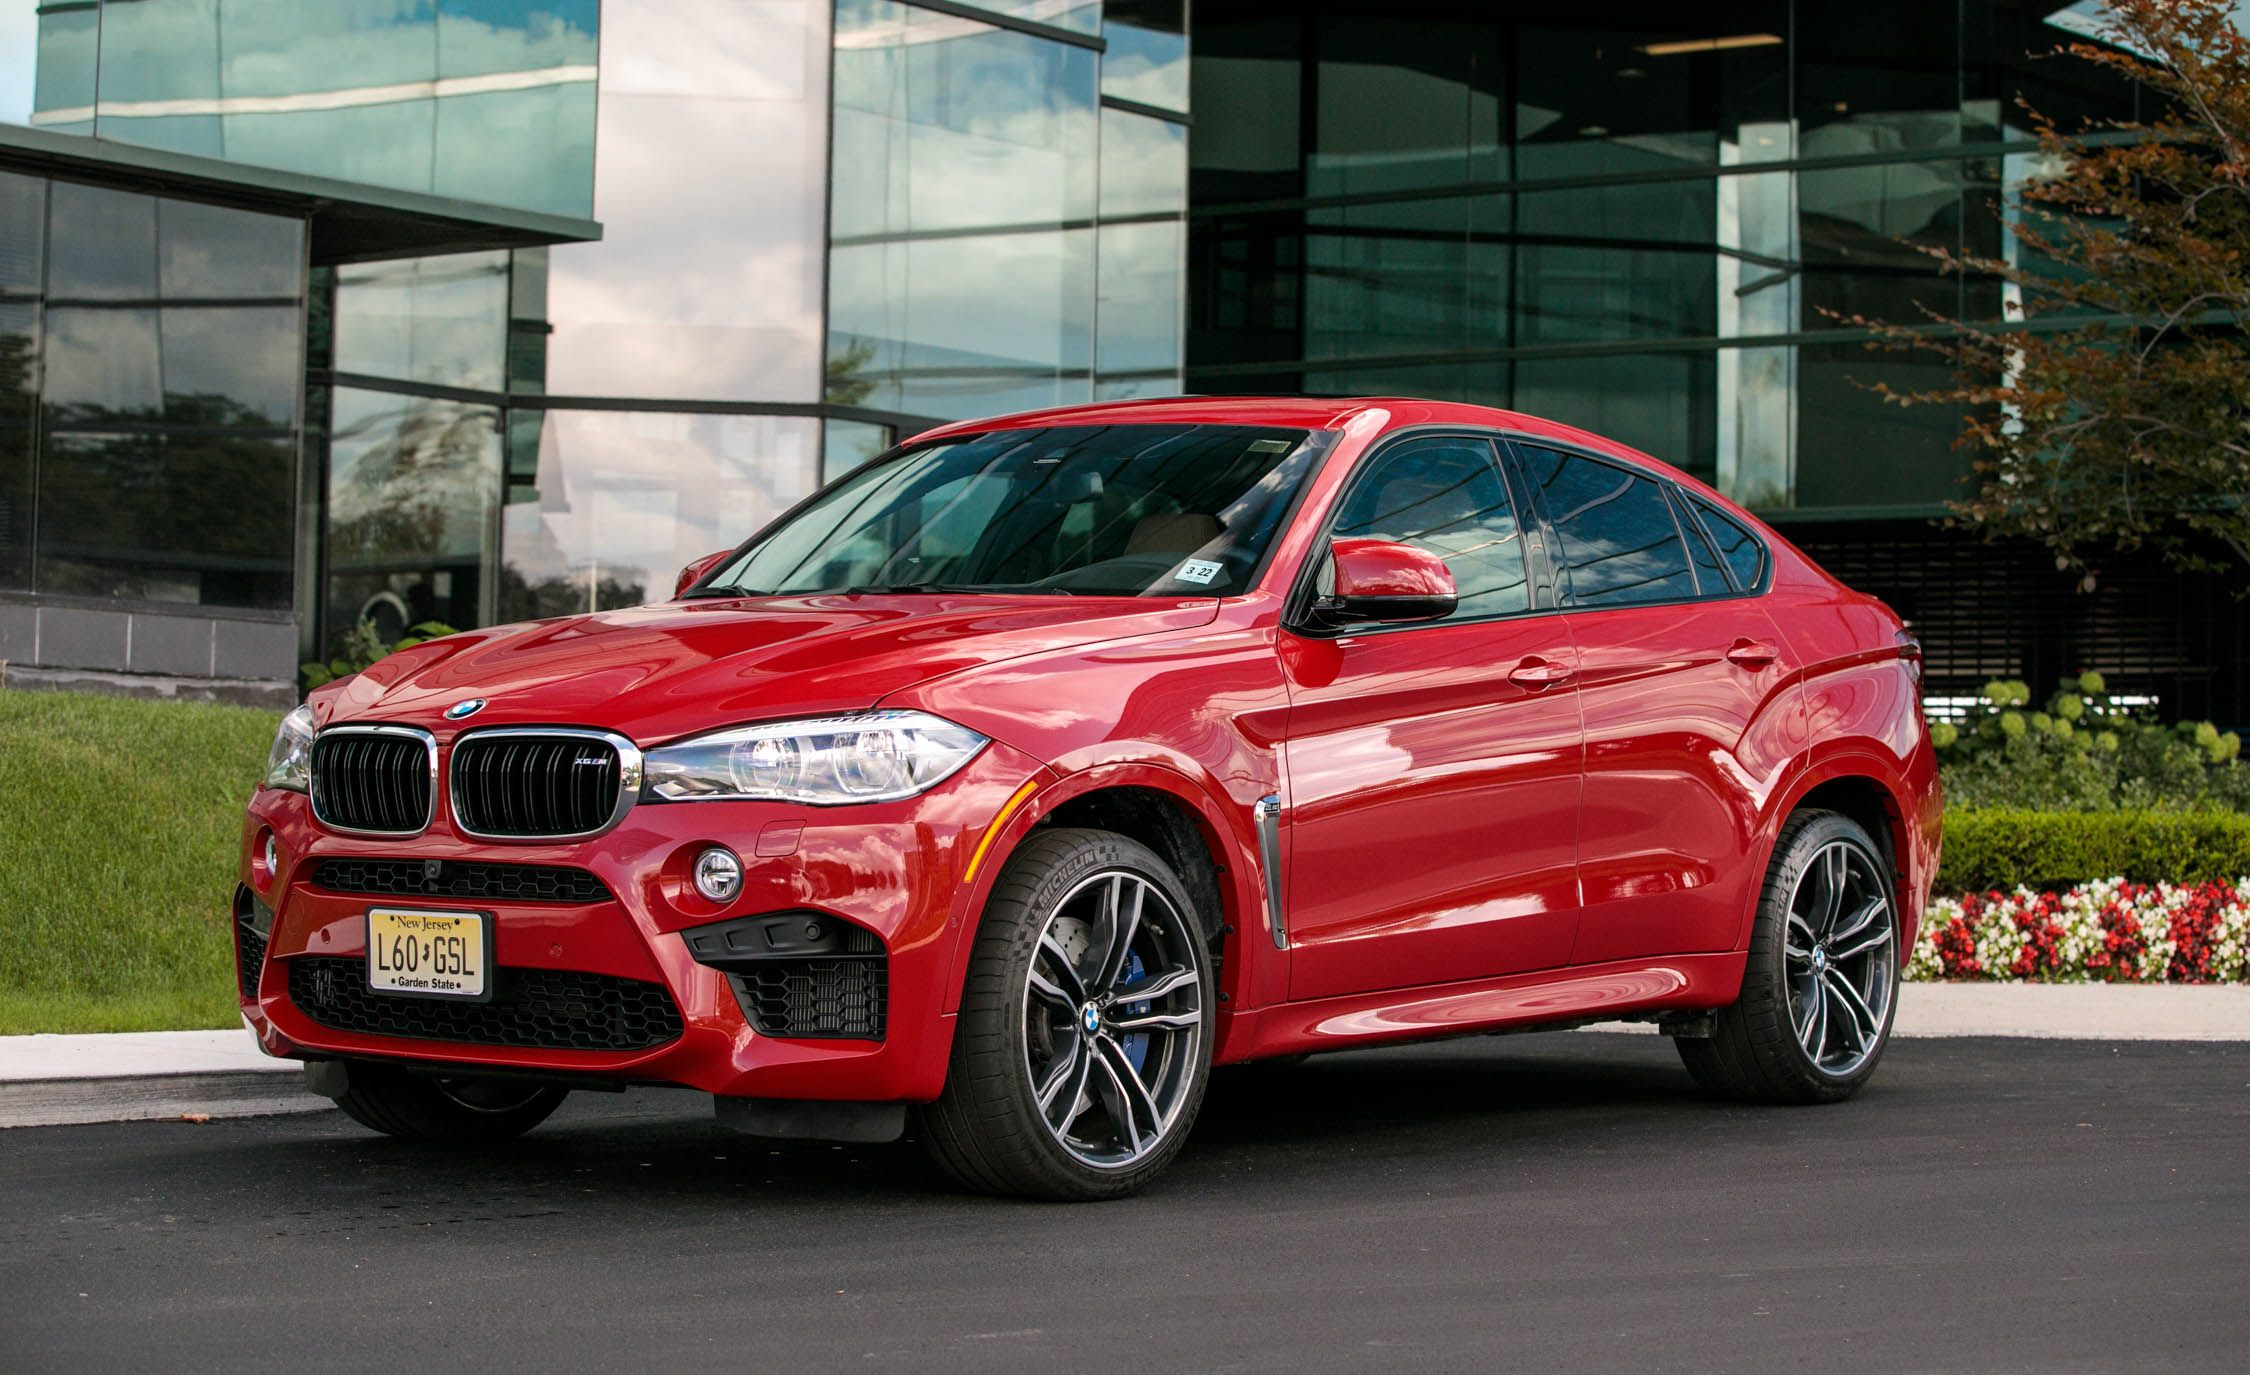 2018 Bmw X6 M Interior And Passenger Space Review Car And Driver